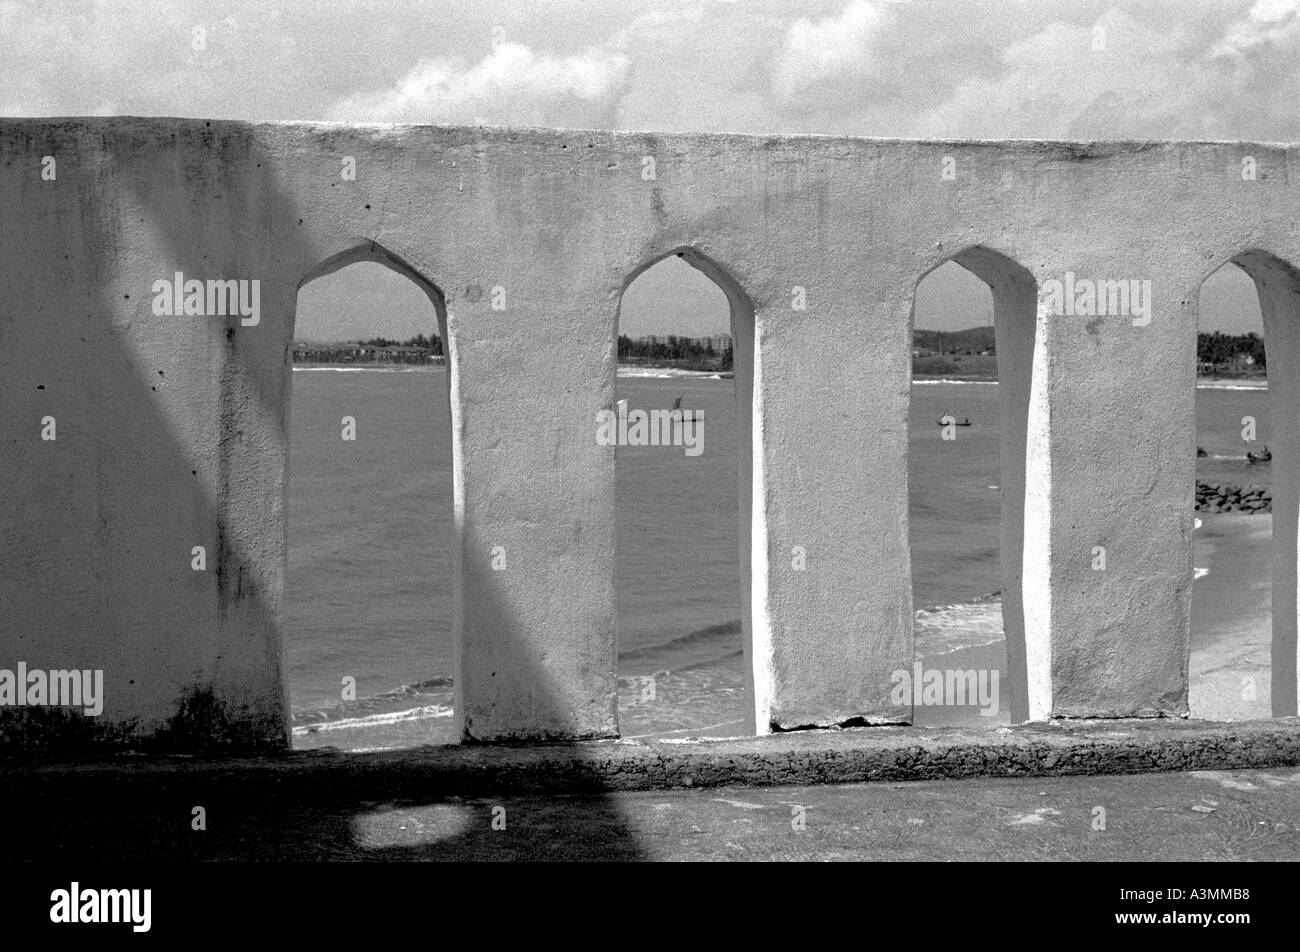 Arches of a slave fort on the Cape Coast of Ghana West Africa - Stock Image